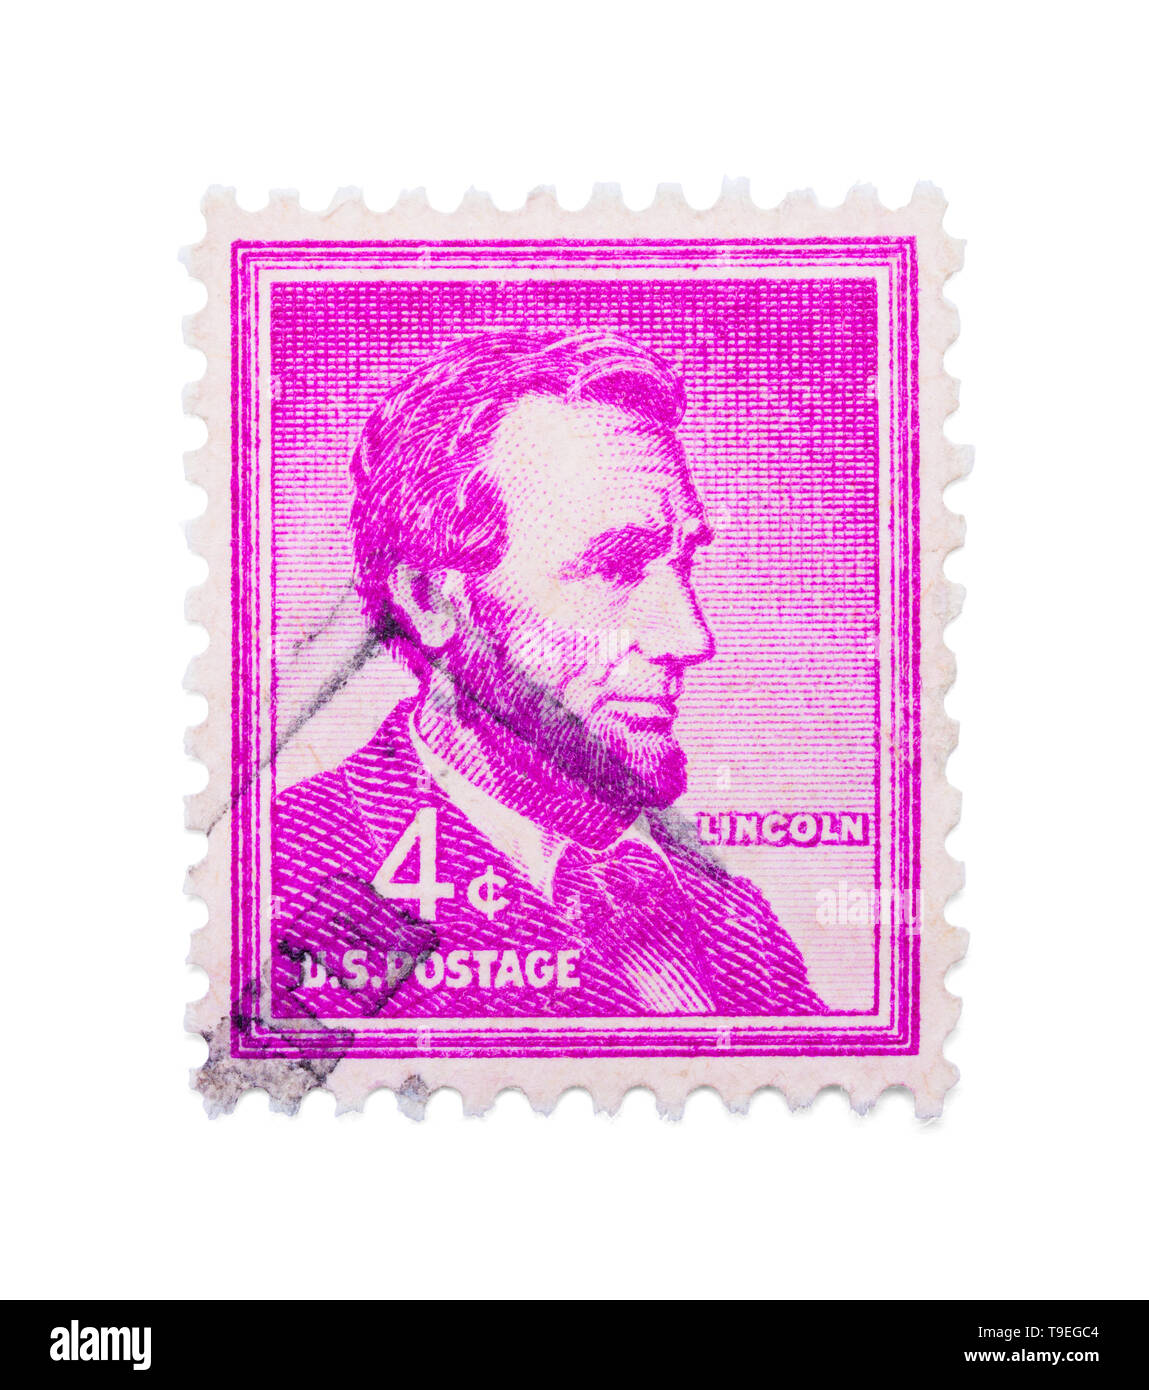 Abraham Lincoln Stamp Isolated on White Background. Stock Photo